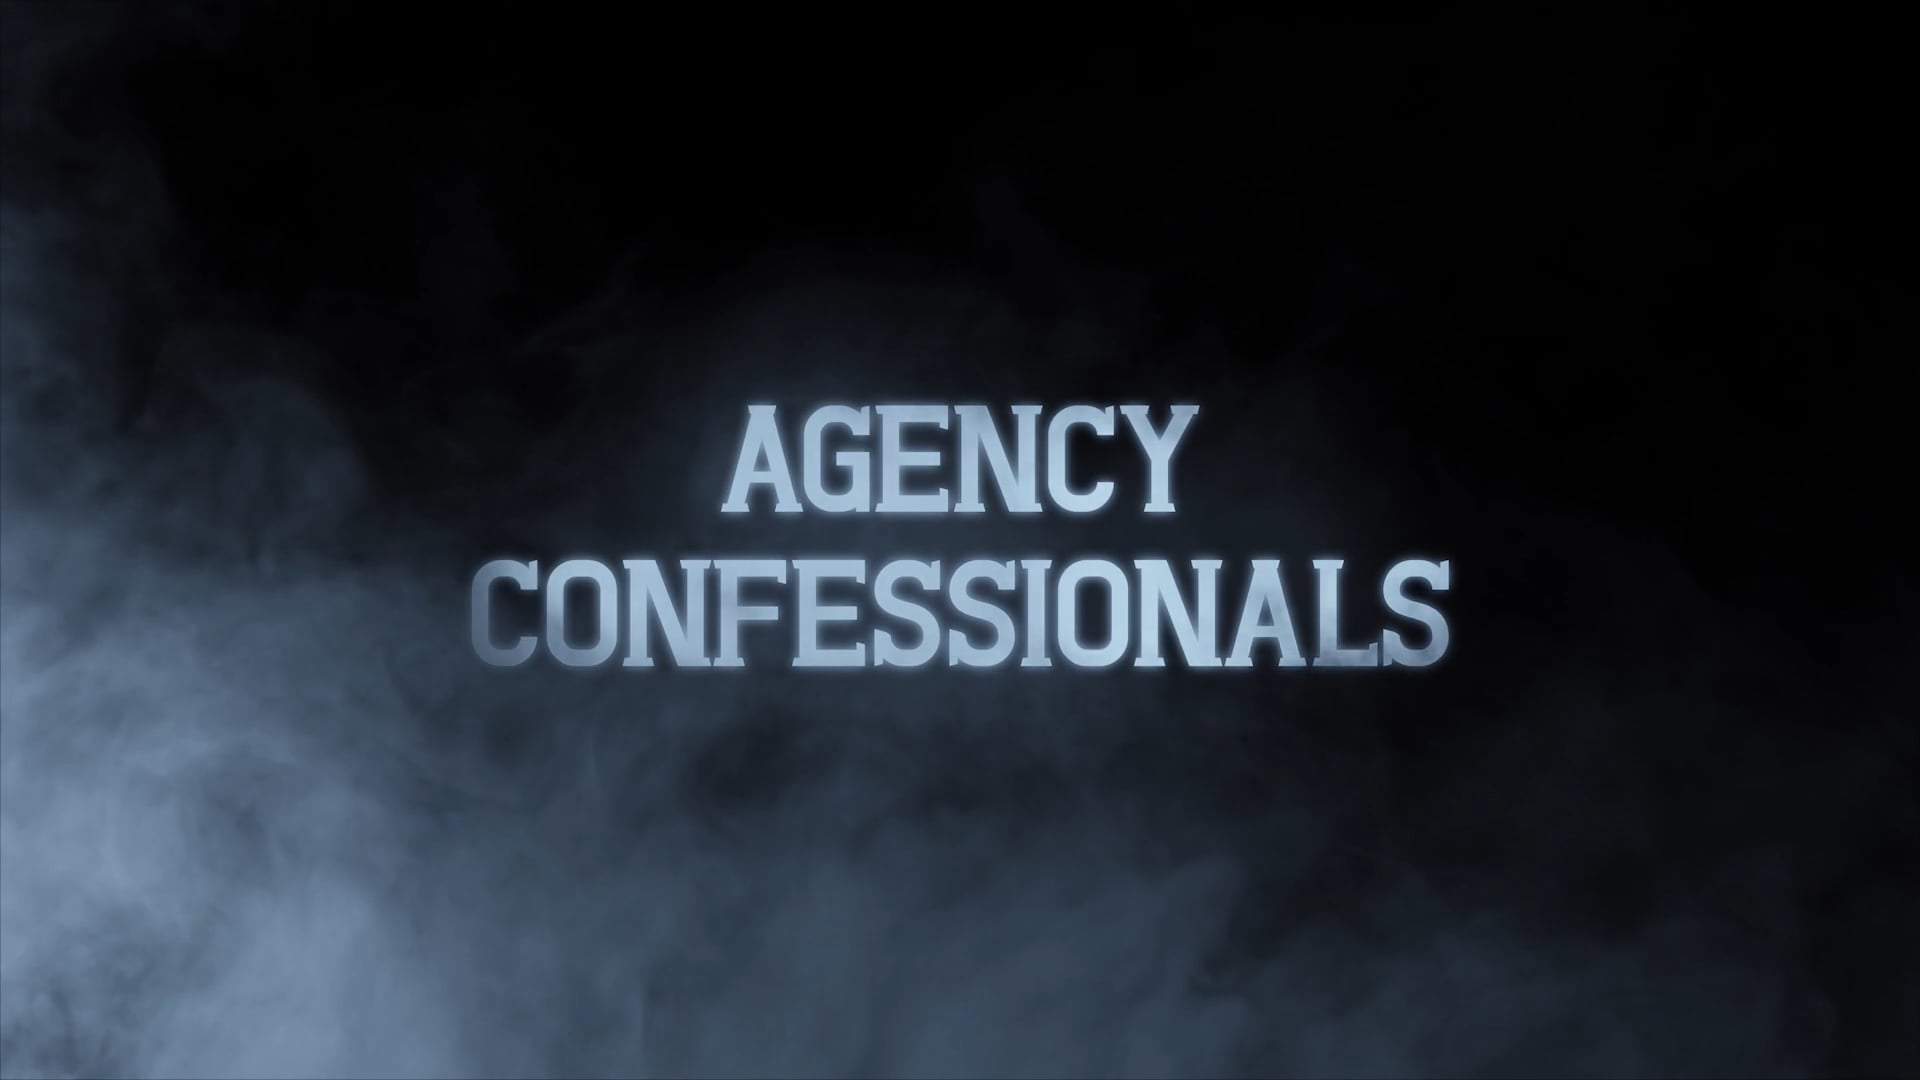 Agency Confessionals